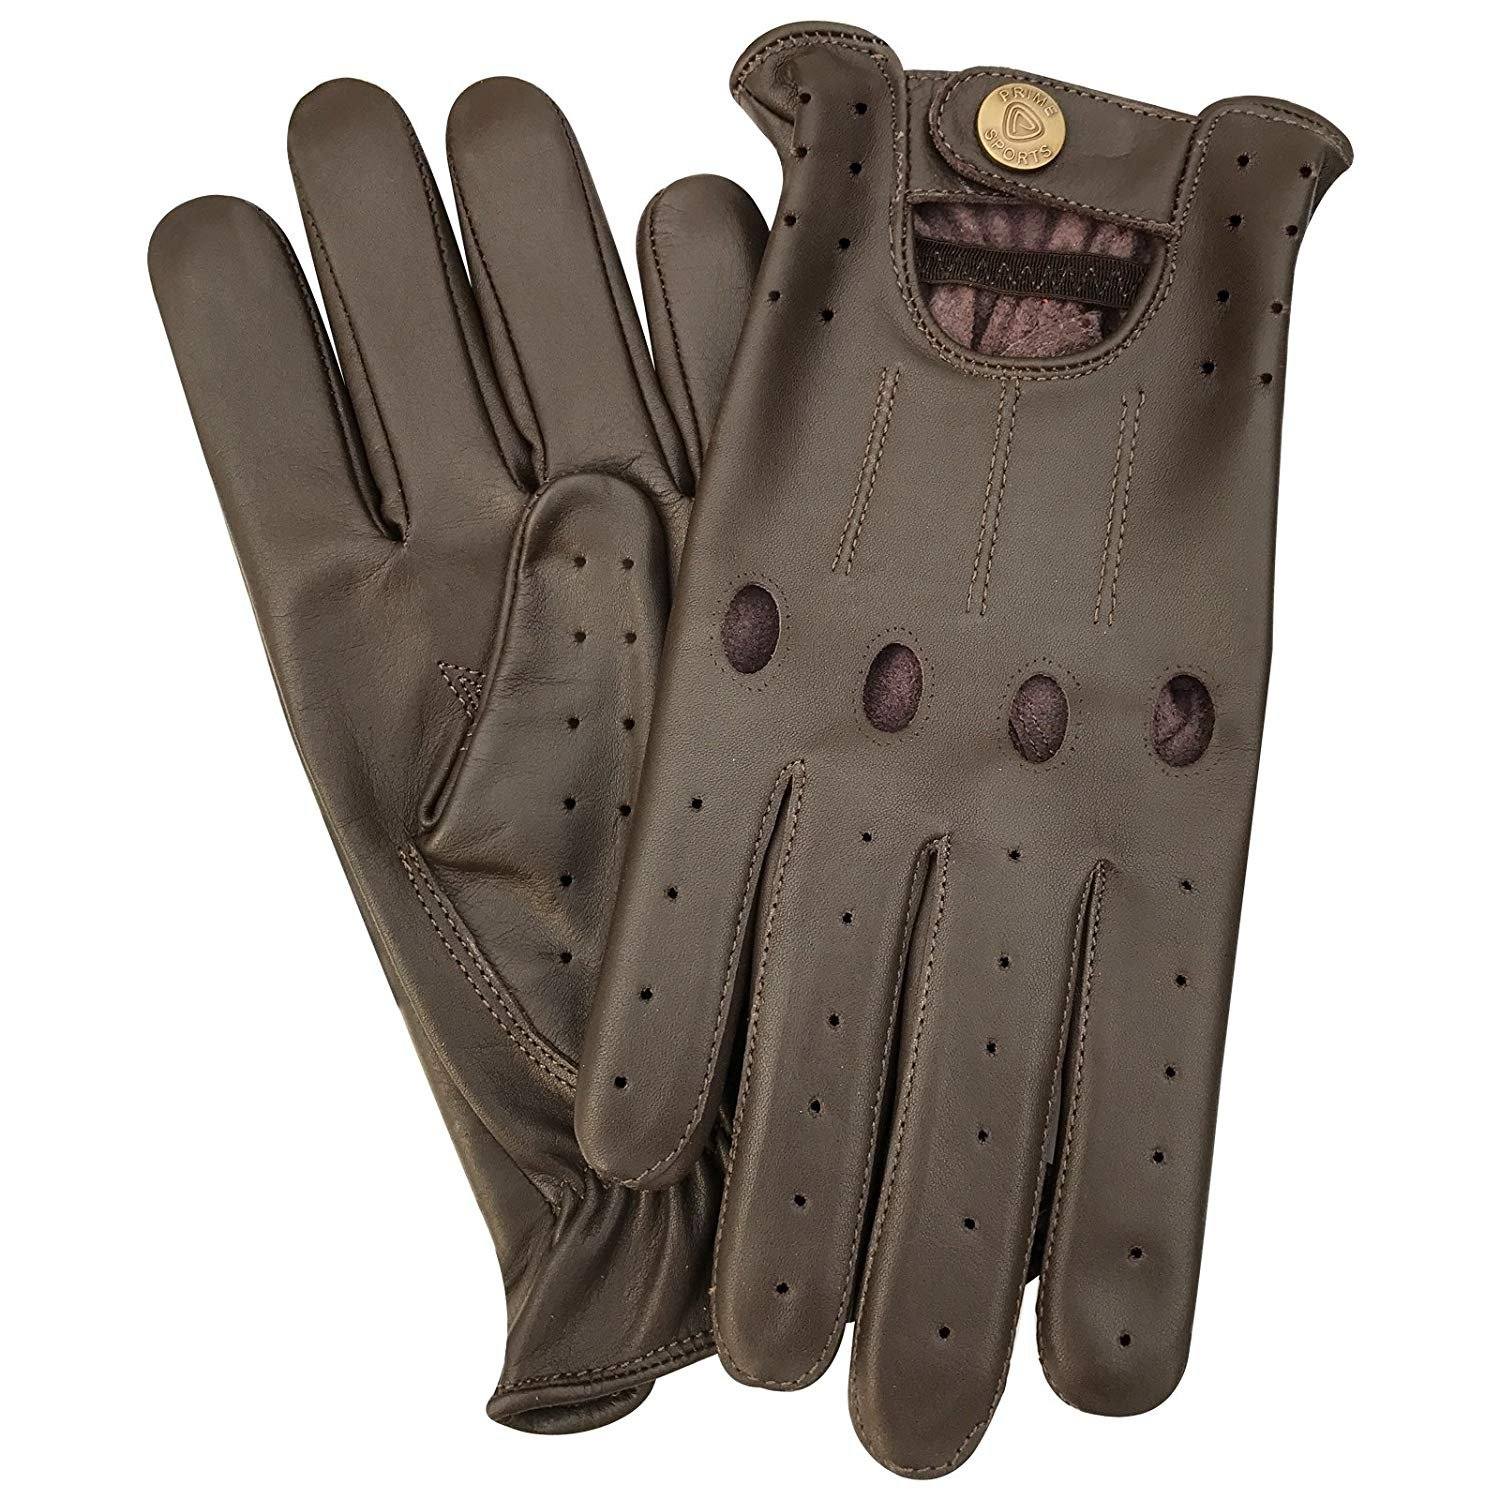 Half Finger Driving Gloves Soft Leather Lined Back Car Chauffeur Motorbike Van